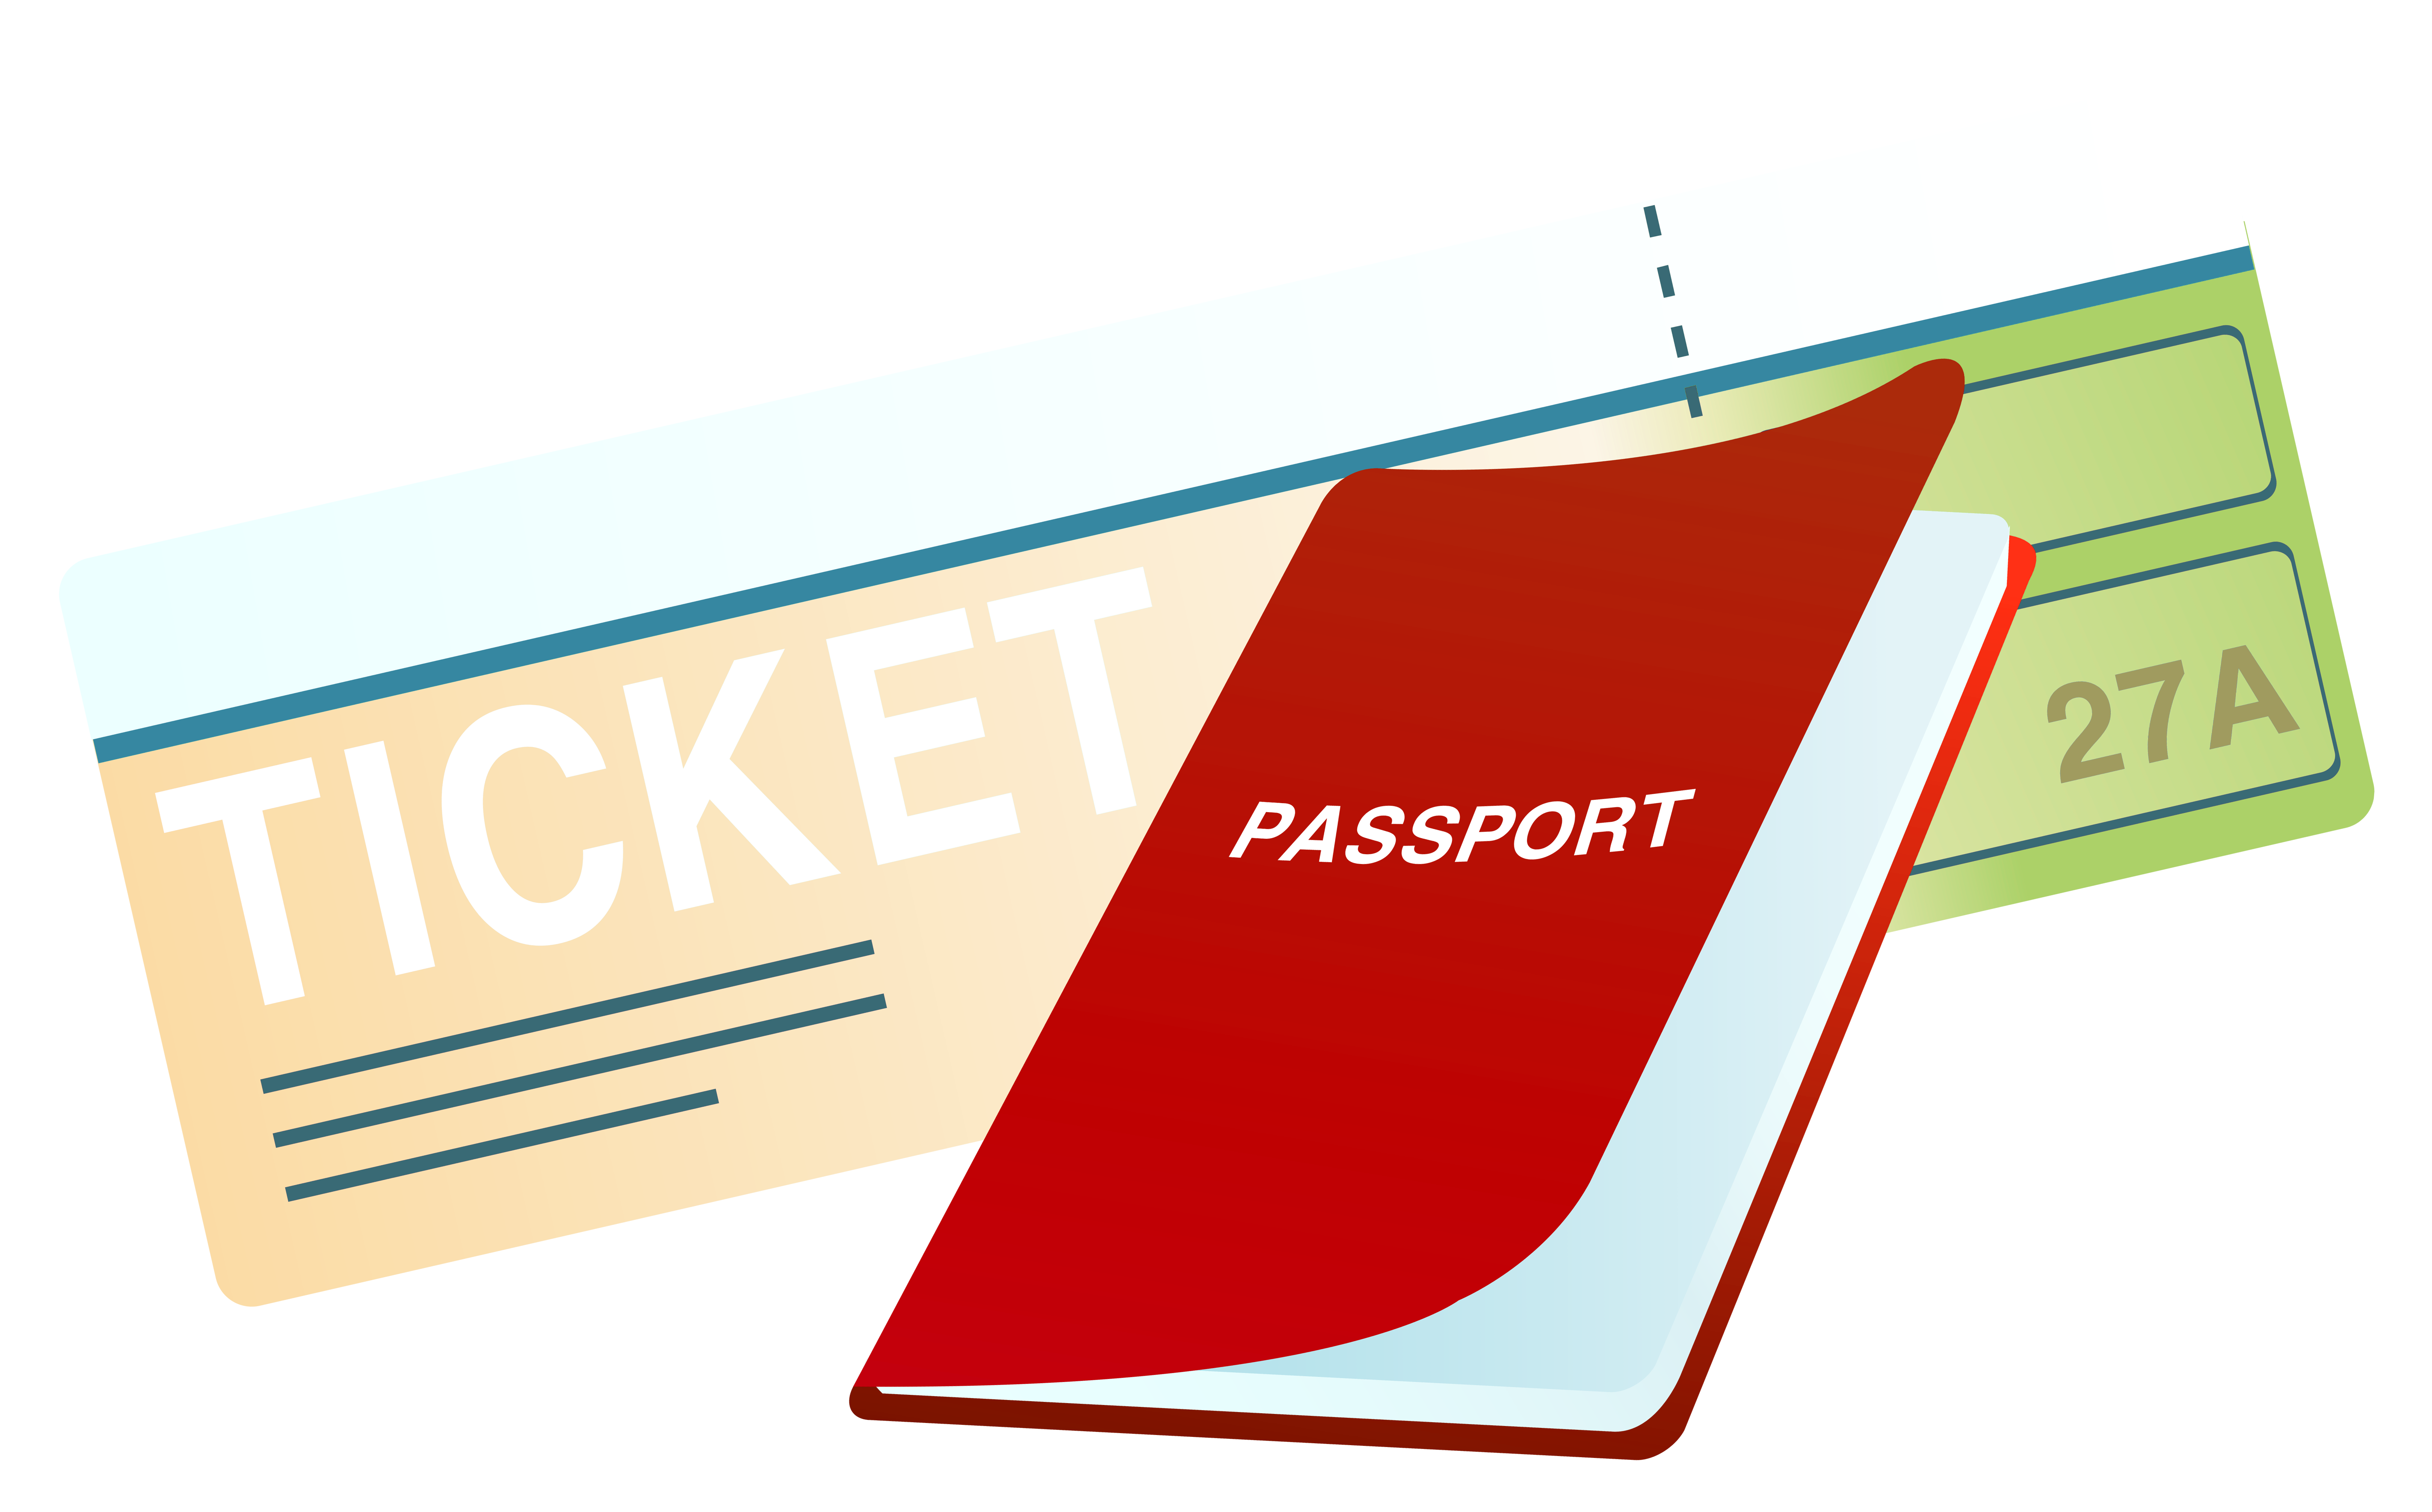 Ticket and png image. Passport clipart png library stock